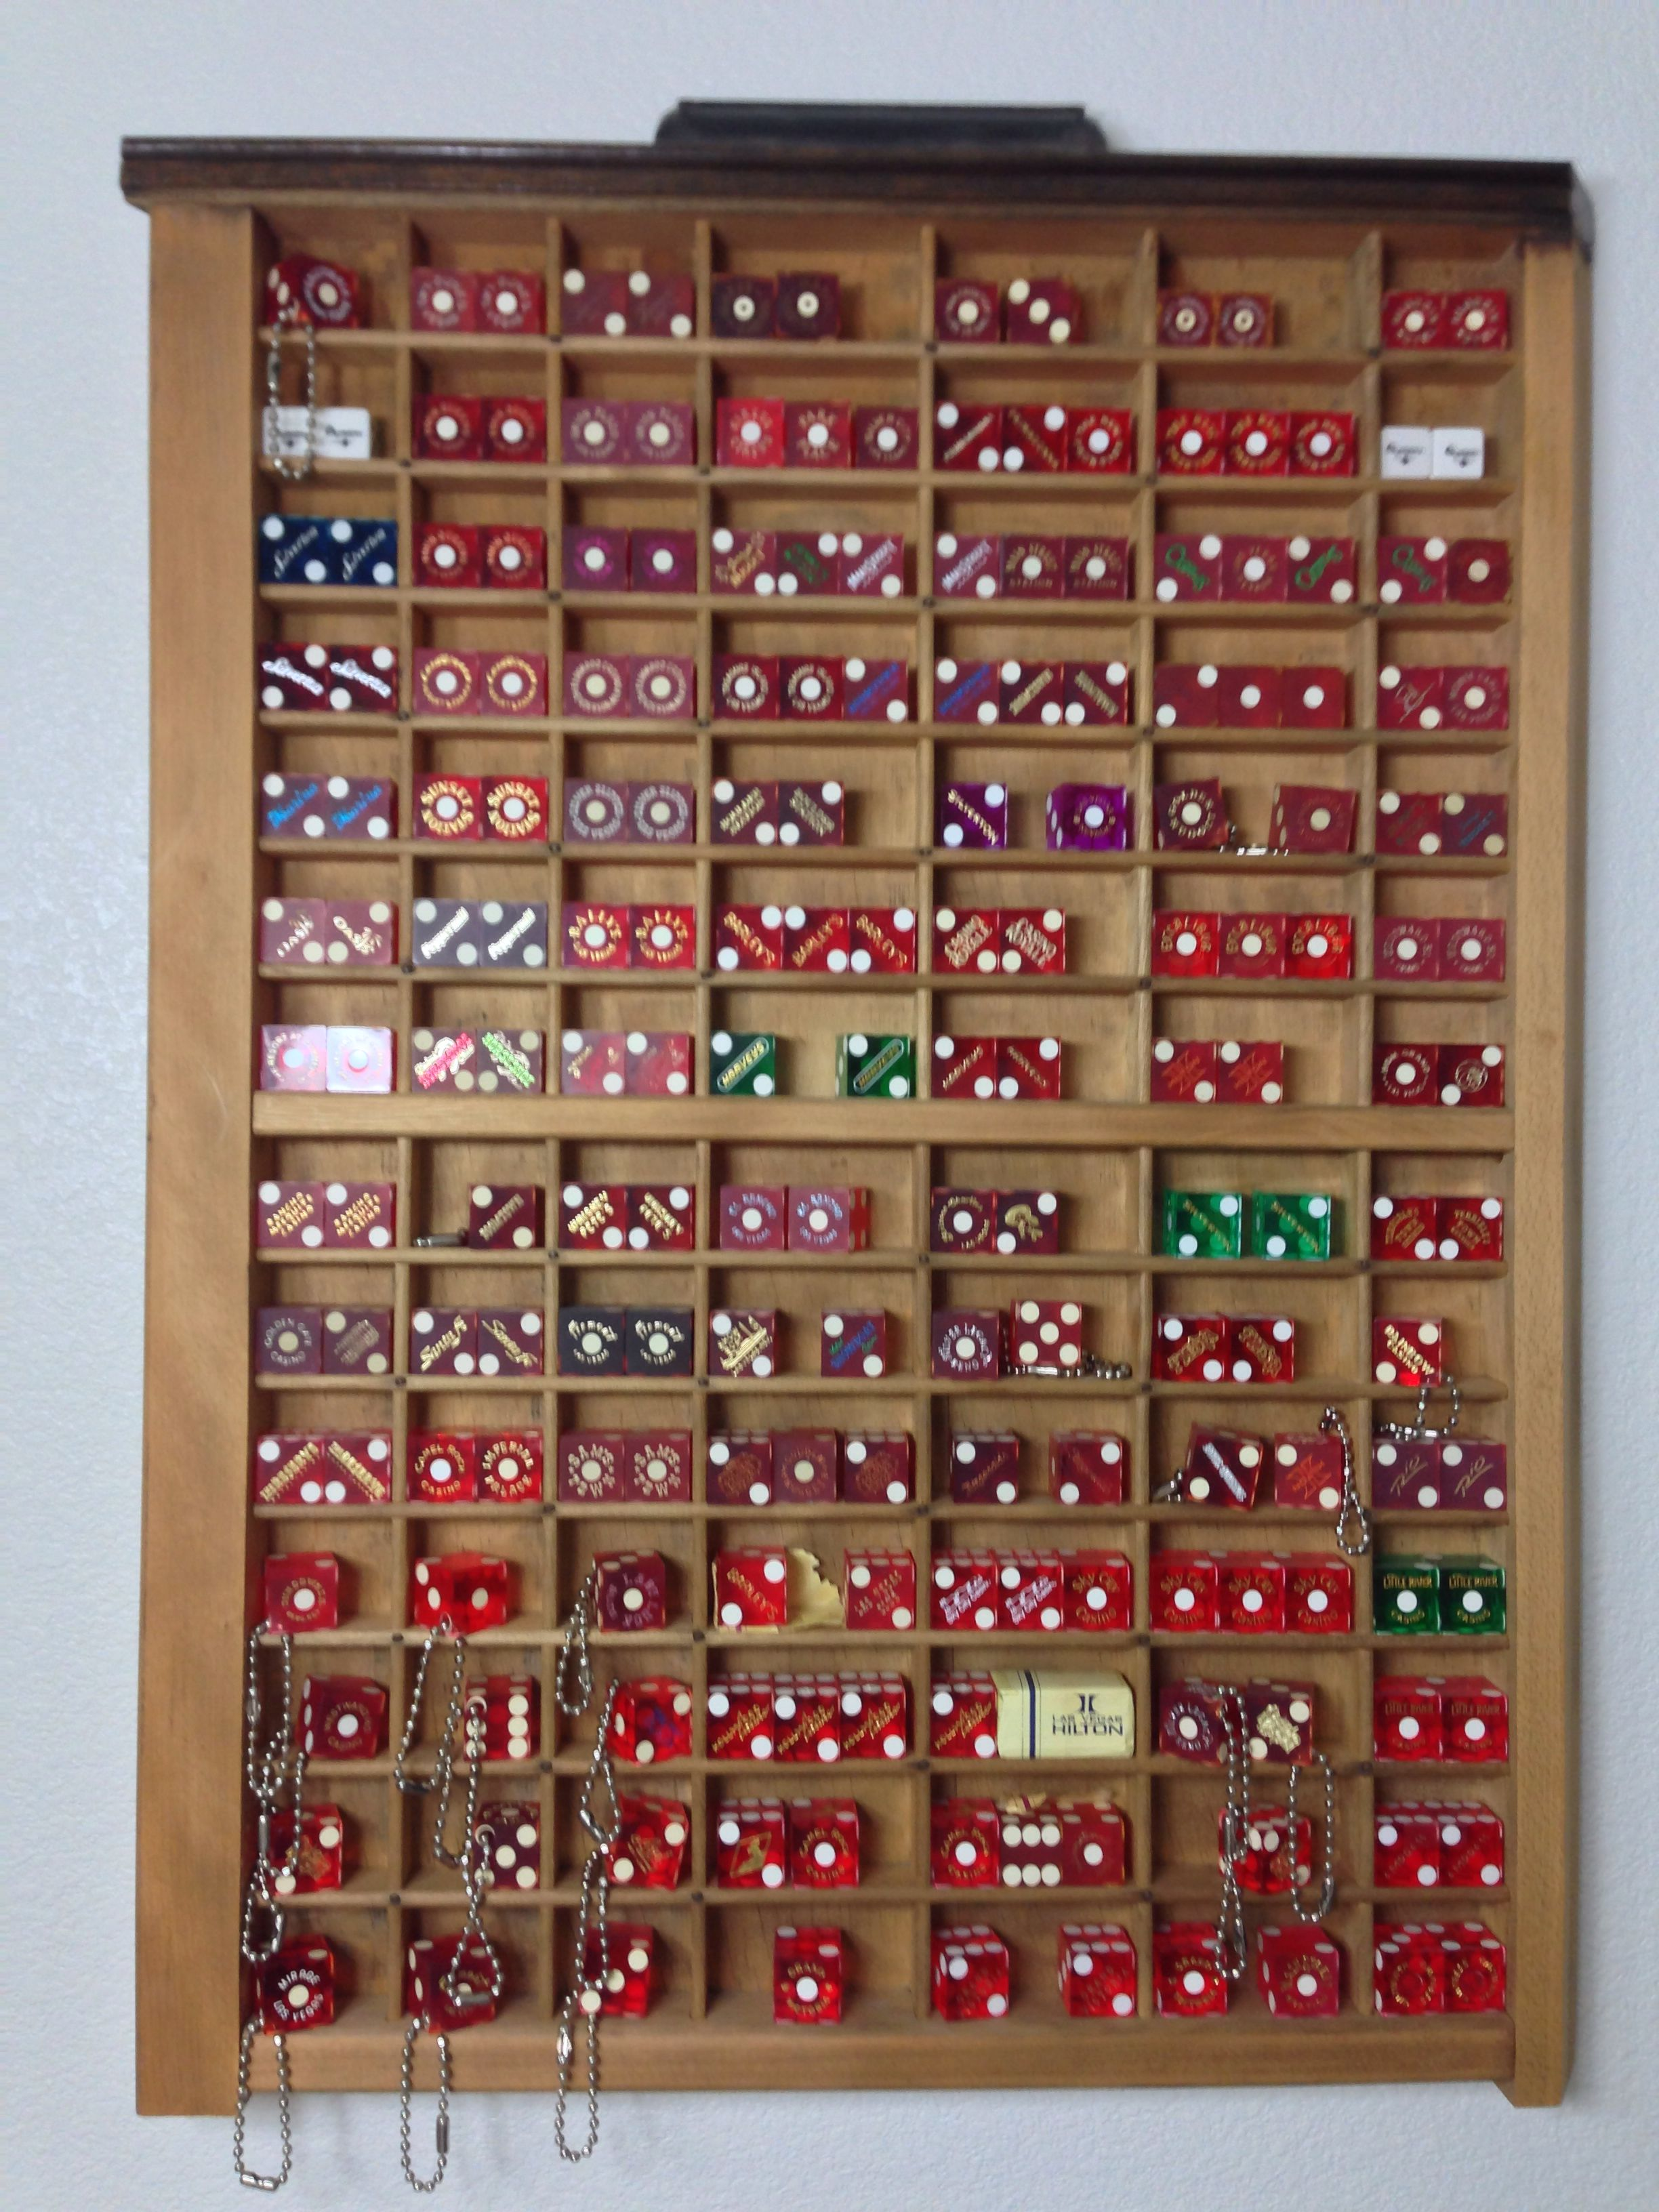 Superieur Neat Wall Mounted Cabinet For Displaying A Dice Collection